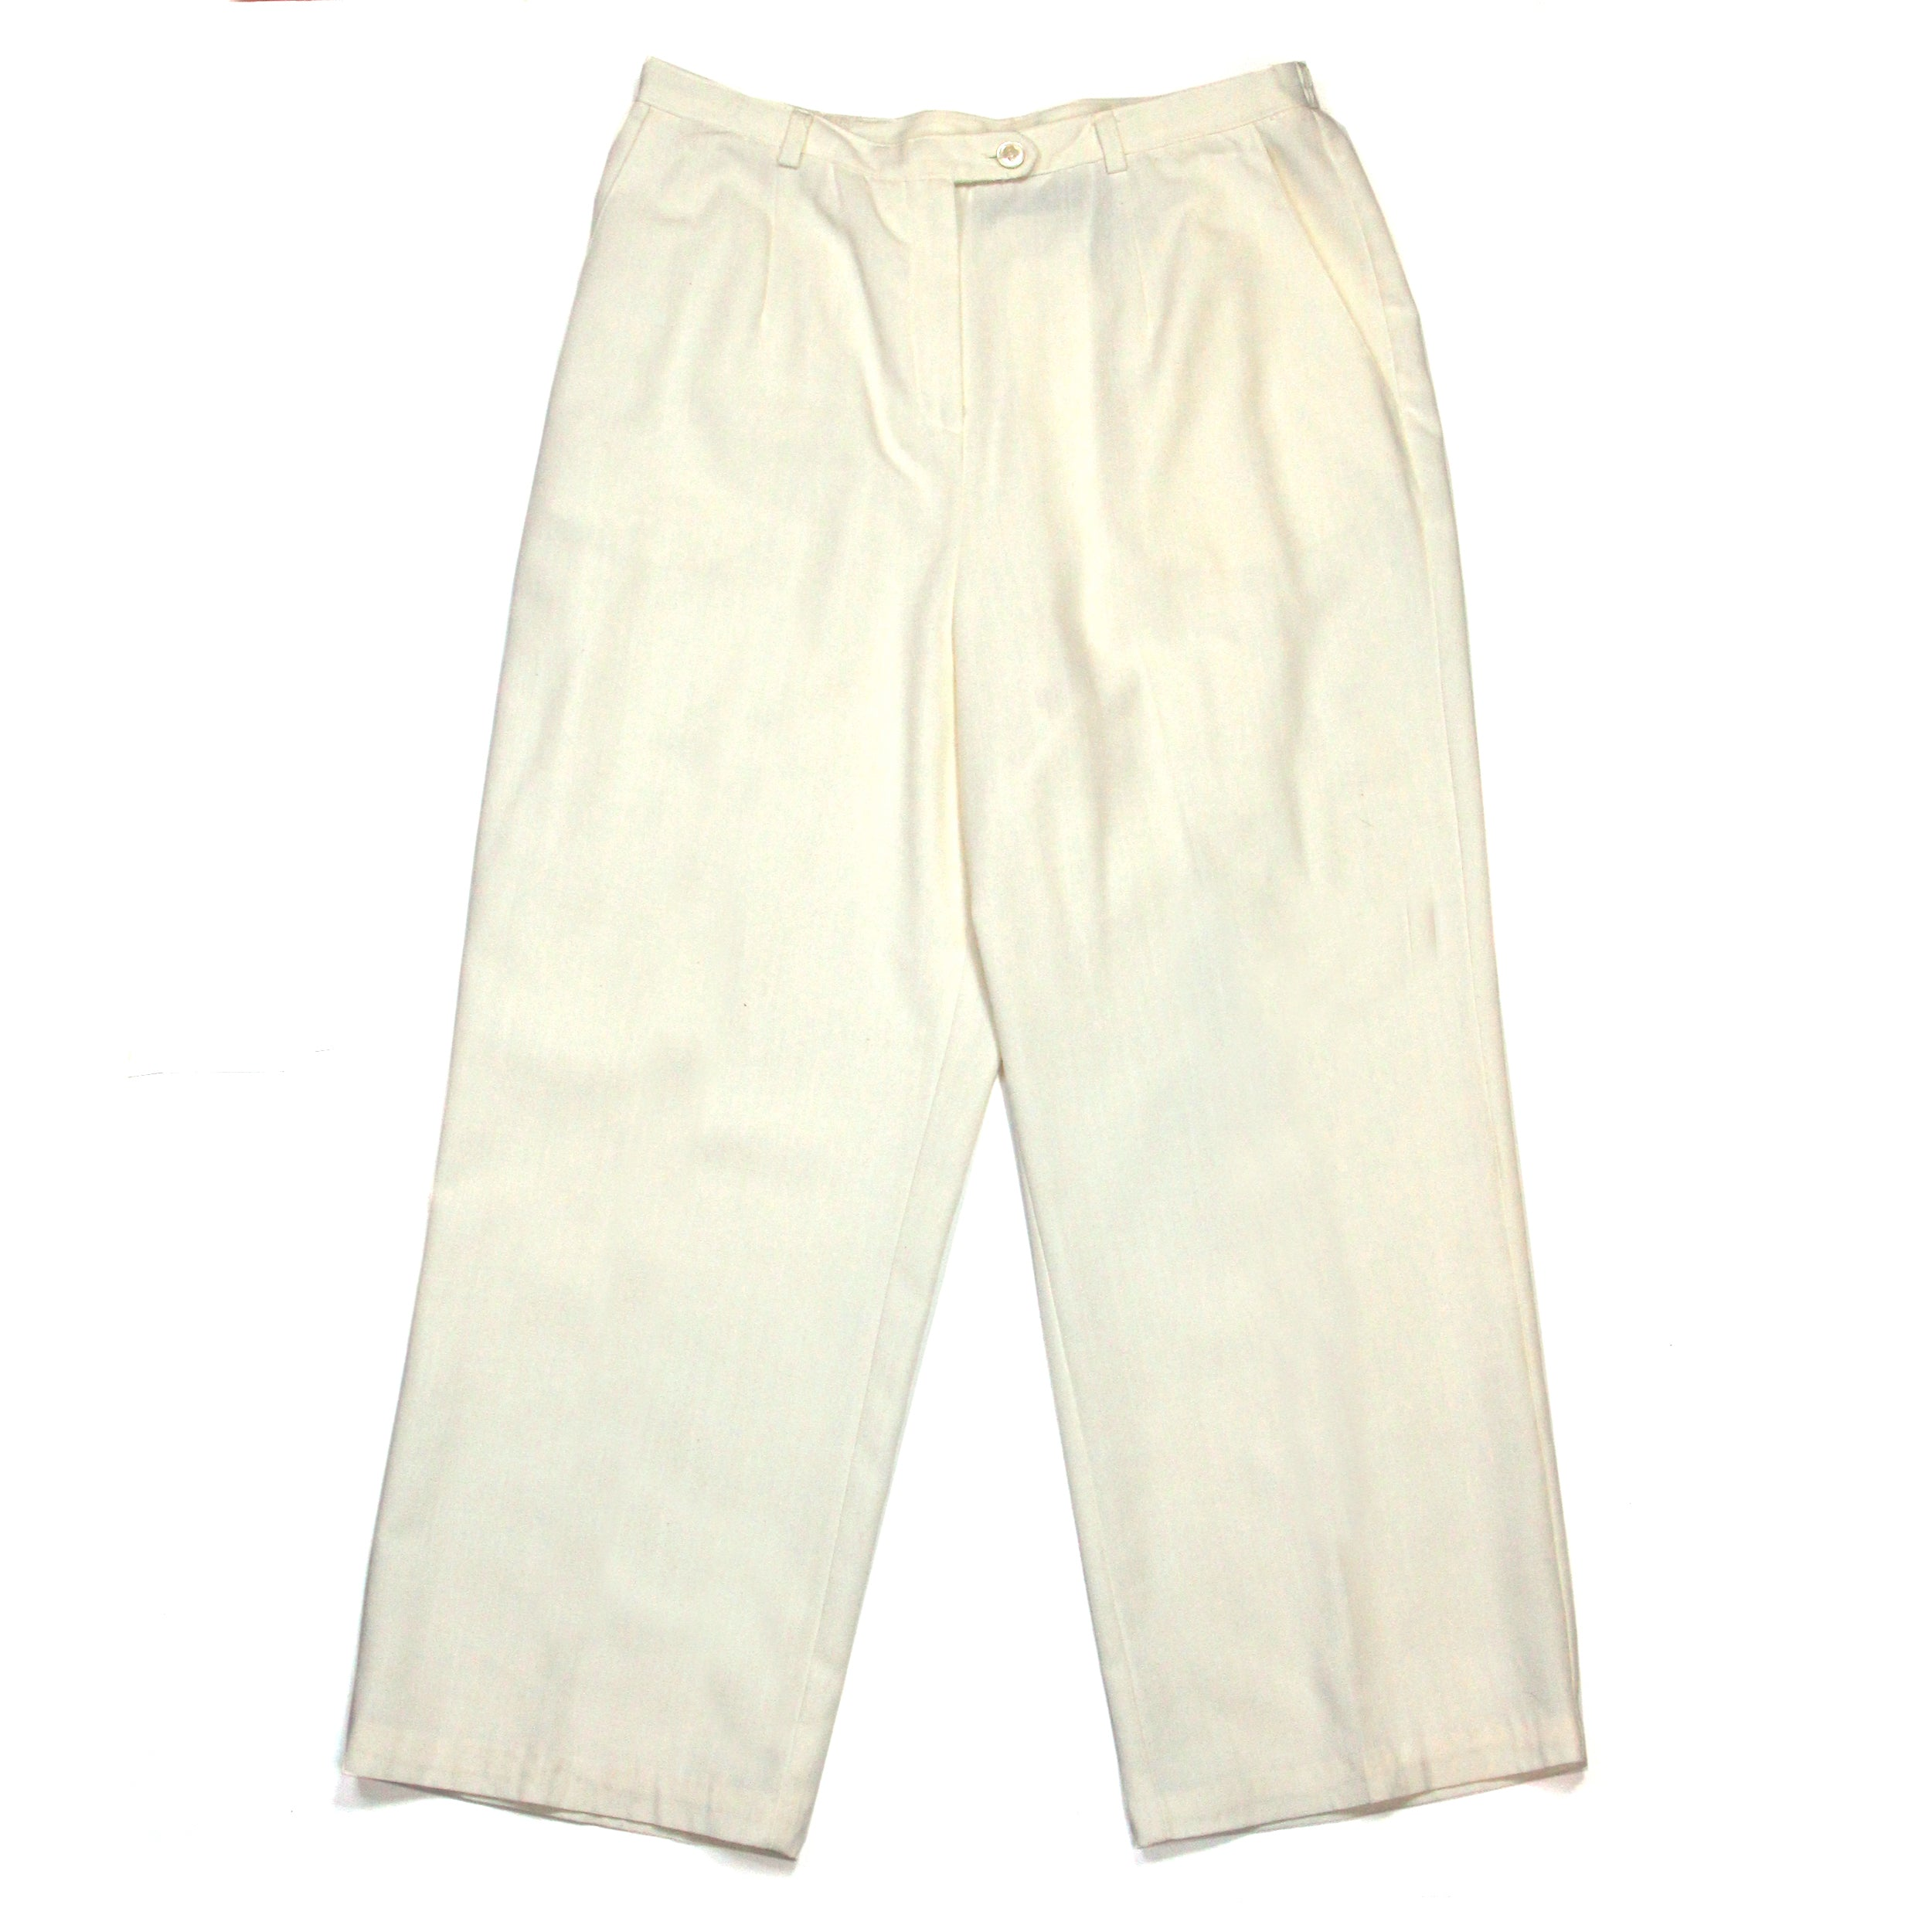 Sag Harbour White Cotton Pants Size L